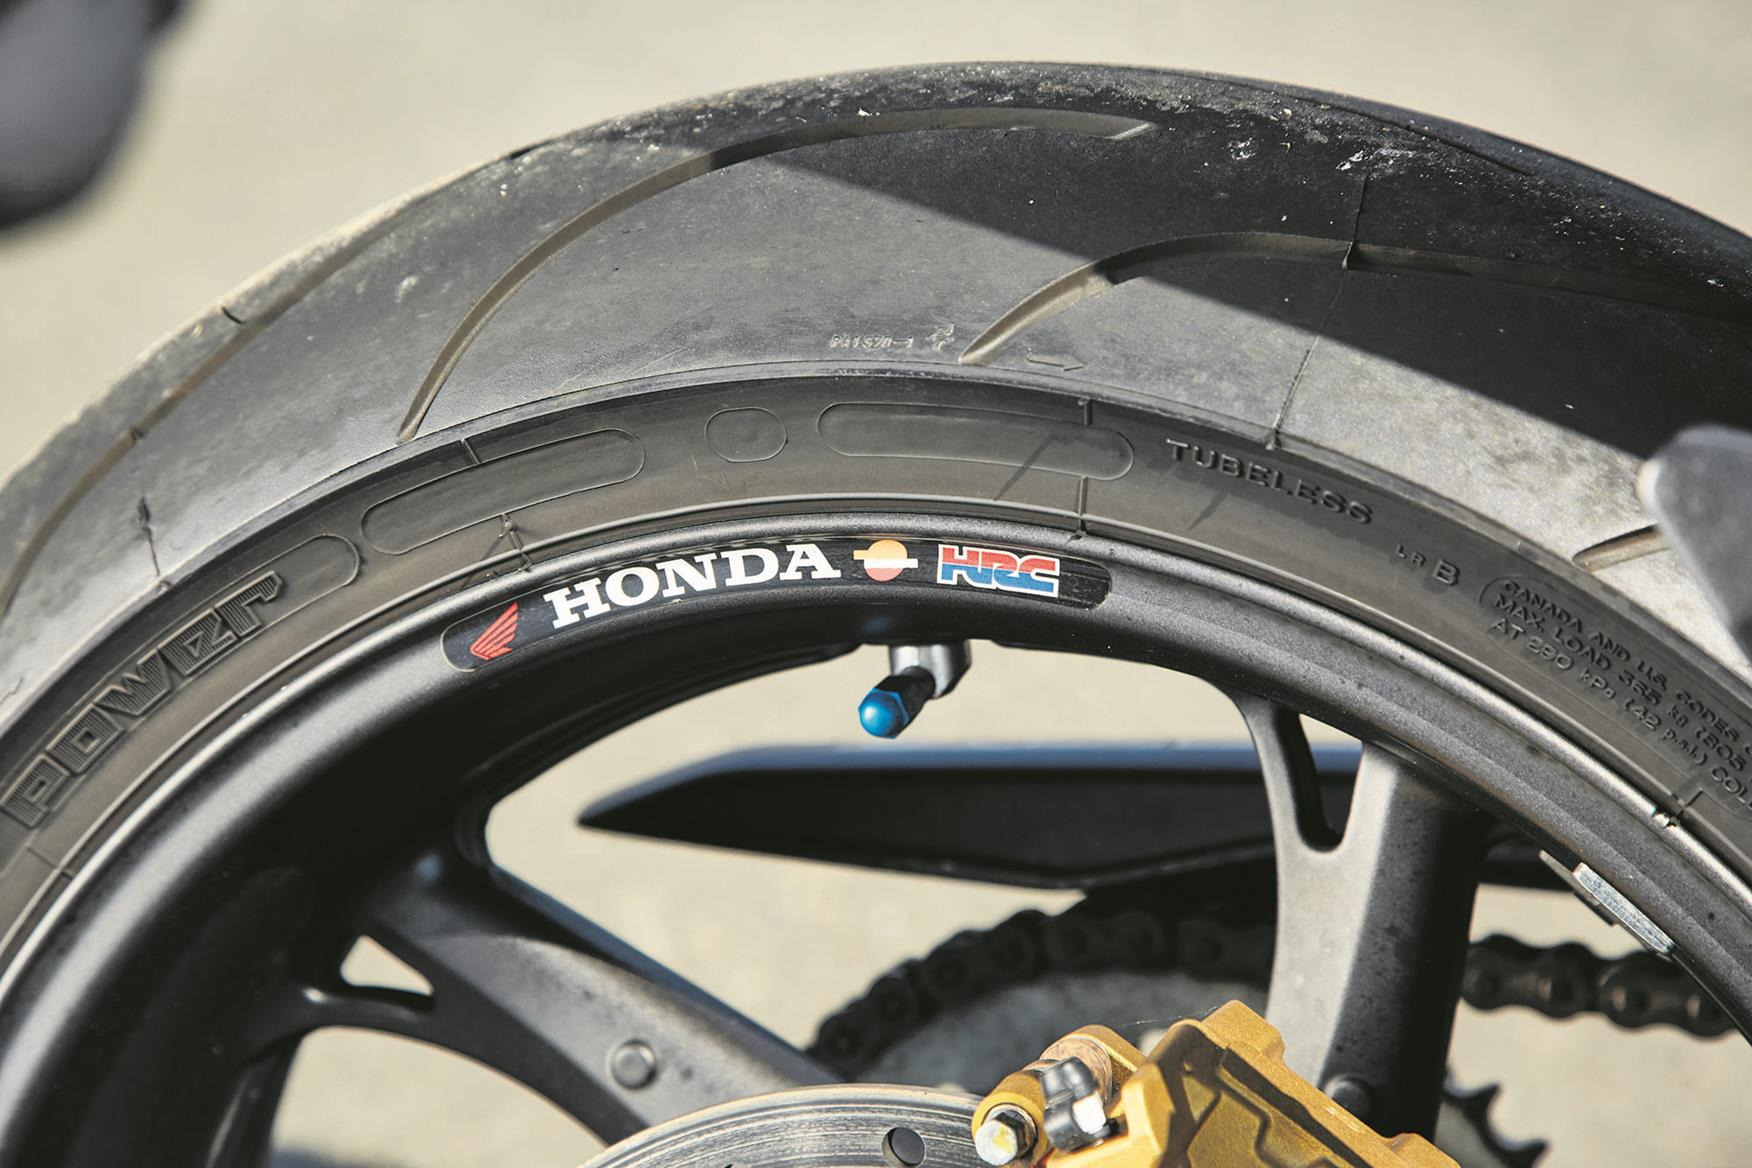 Michelin Pilot Power tyres are some way behind the latest rubber